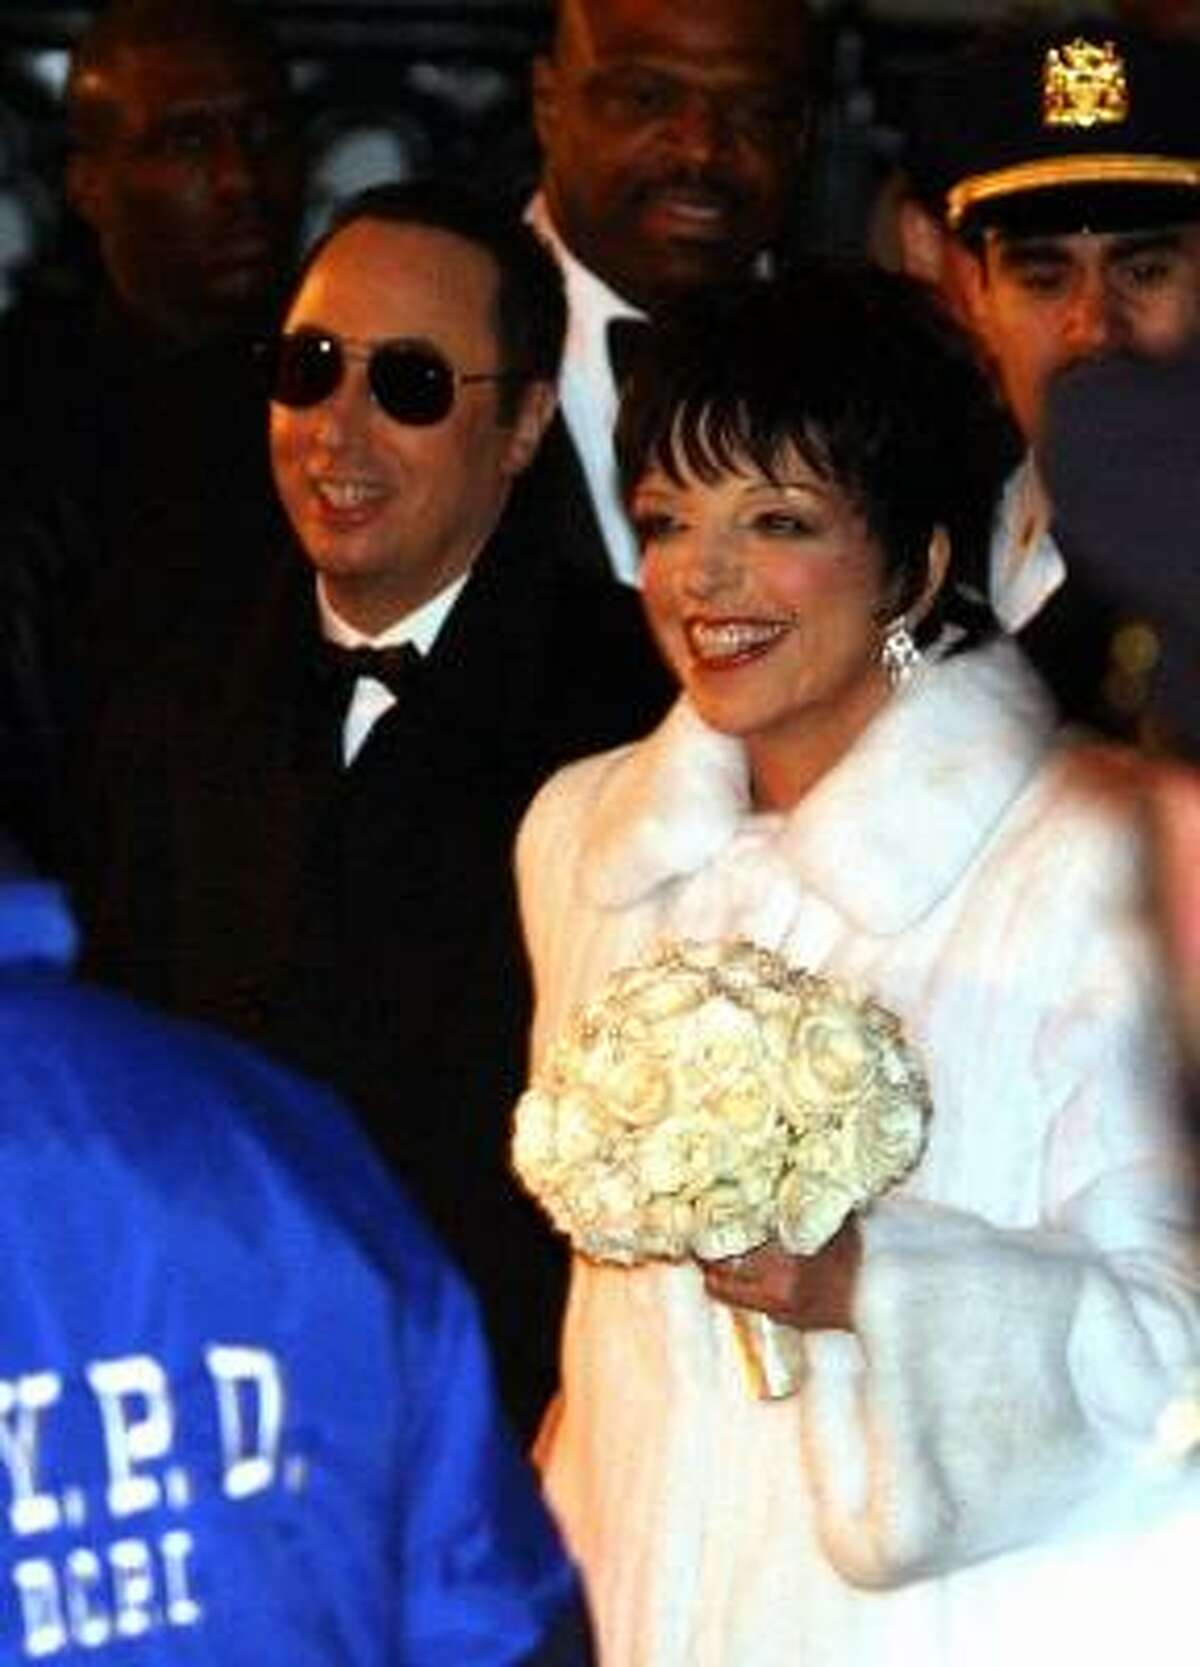 Think your wedding was expensive? David Gest's wedding with Liza Minnelli in 2002 cost an estimated $3.5 million. The pair divorced the following year.